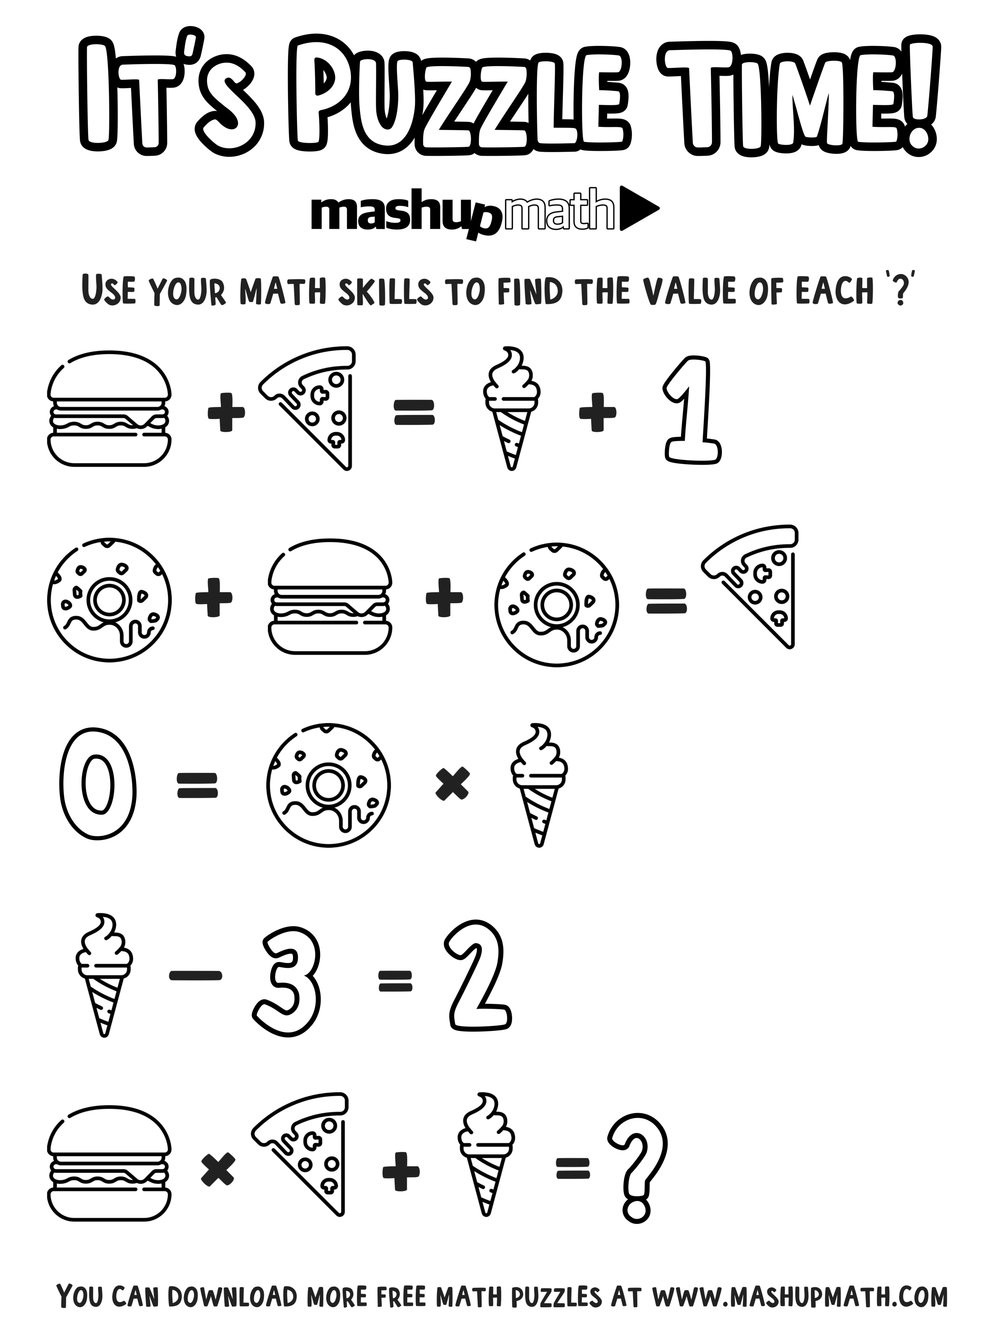 6th Grade Math Puzzles Worksheets Free Math Coloring Worksheets for 5th and 6th Grade — Mashup